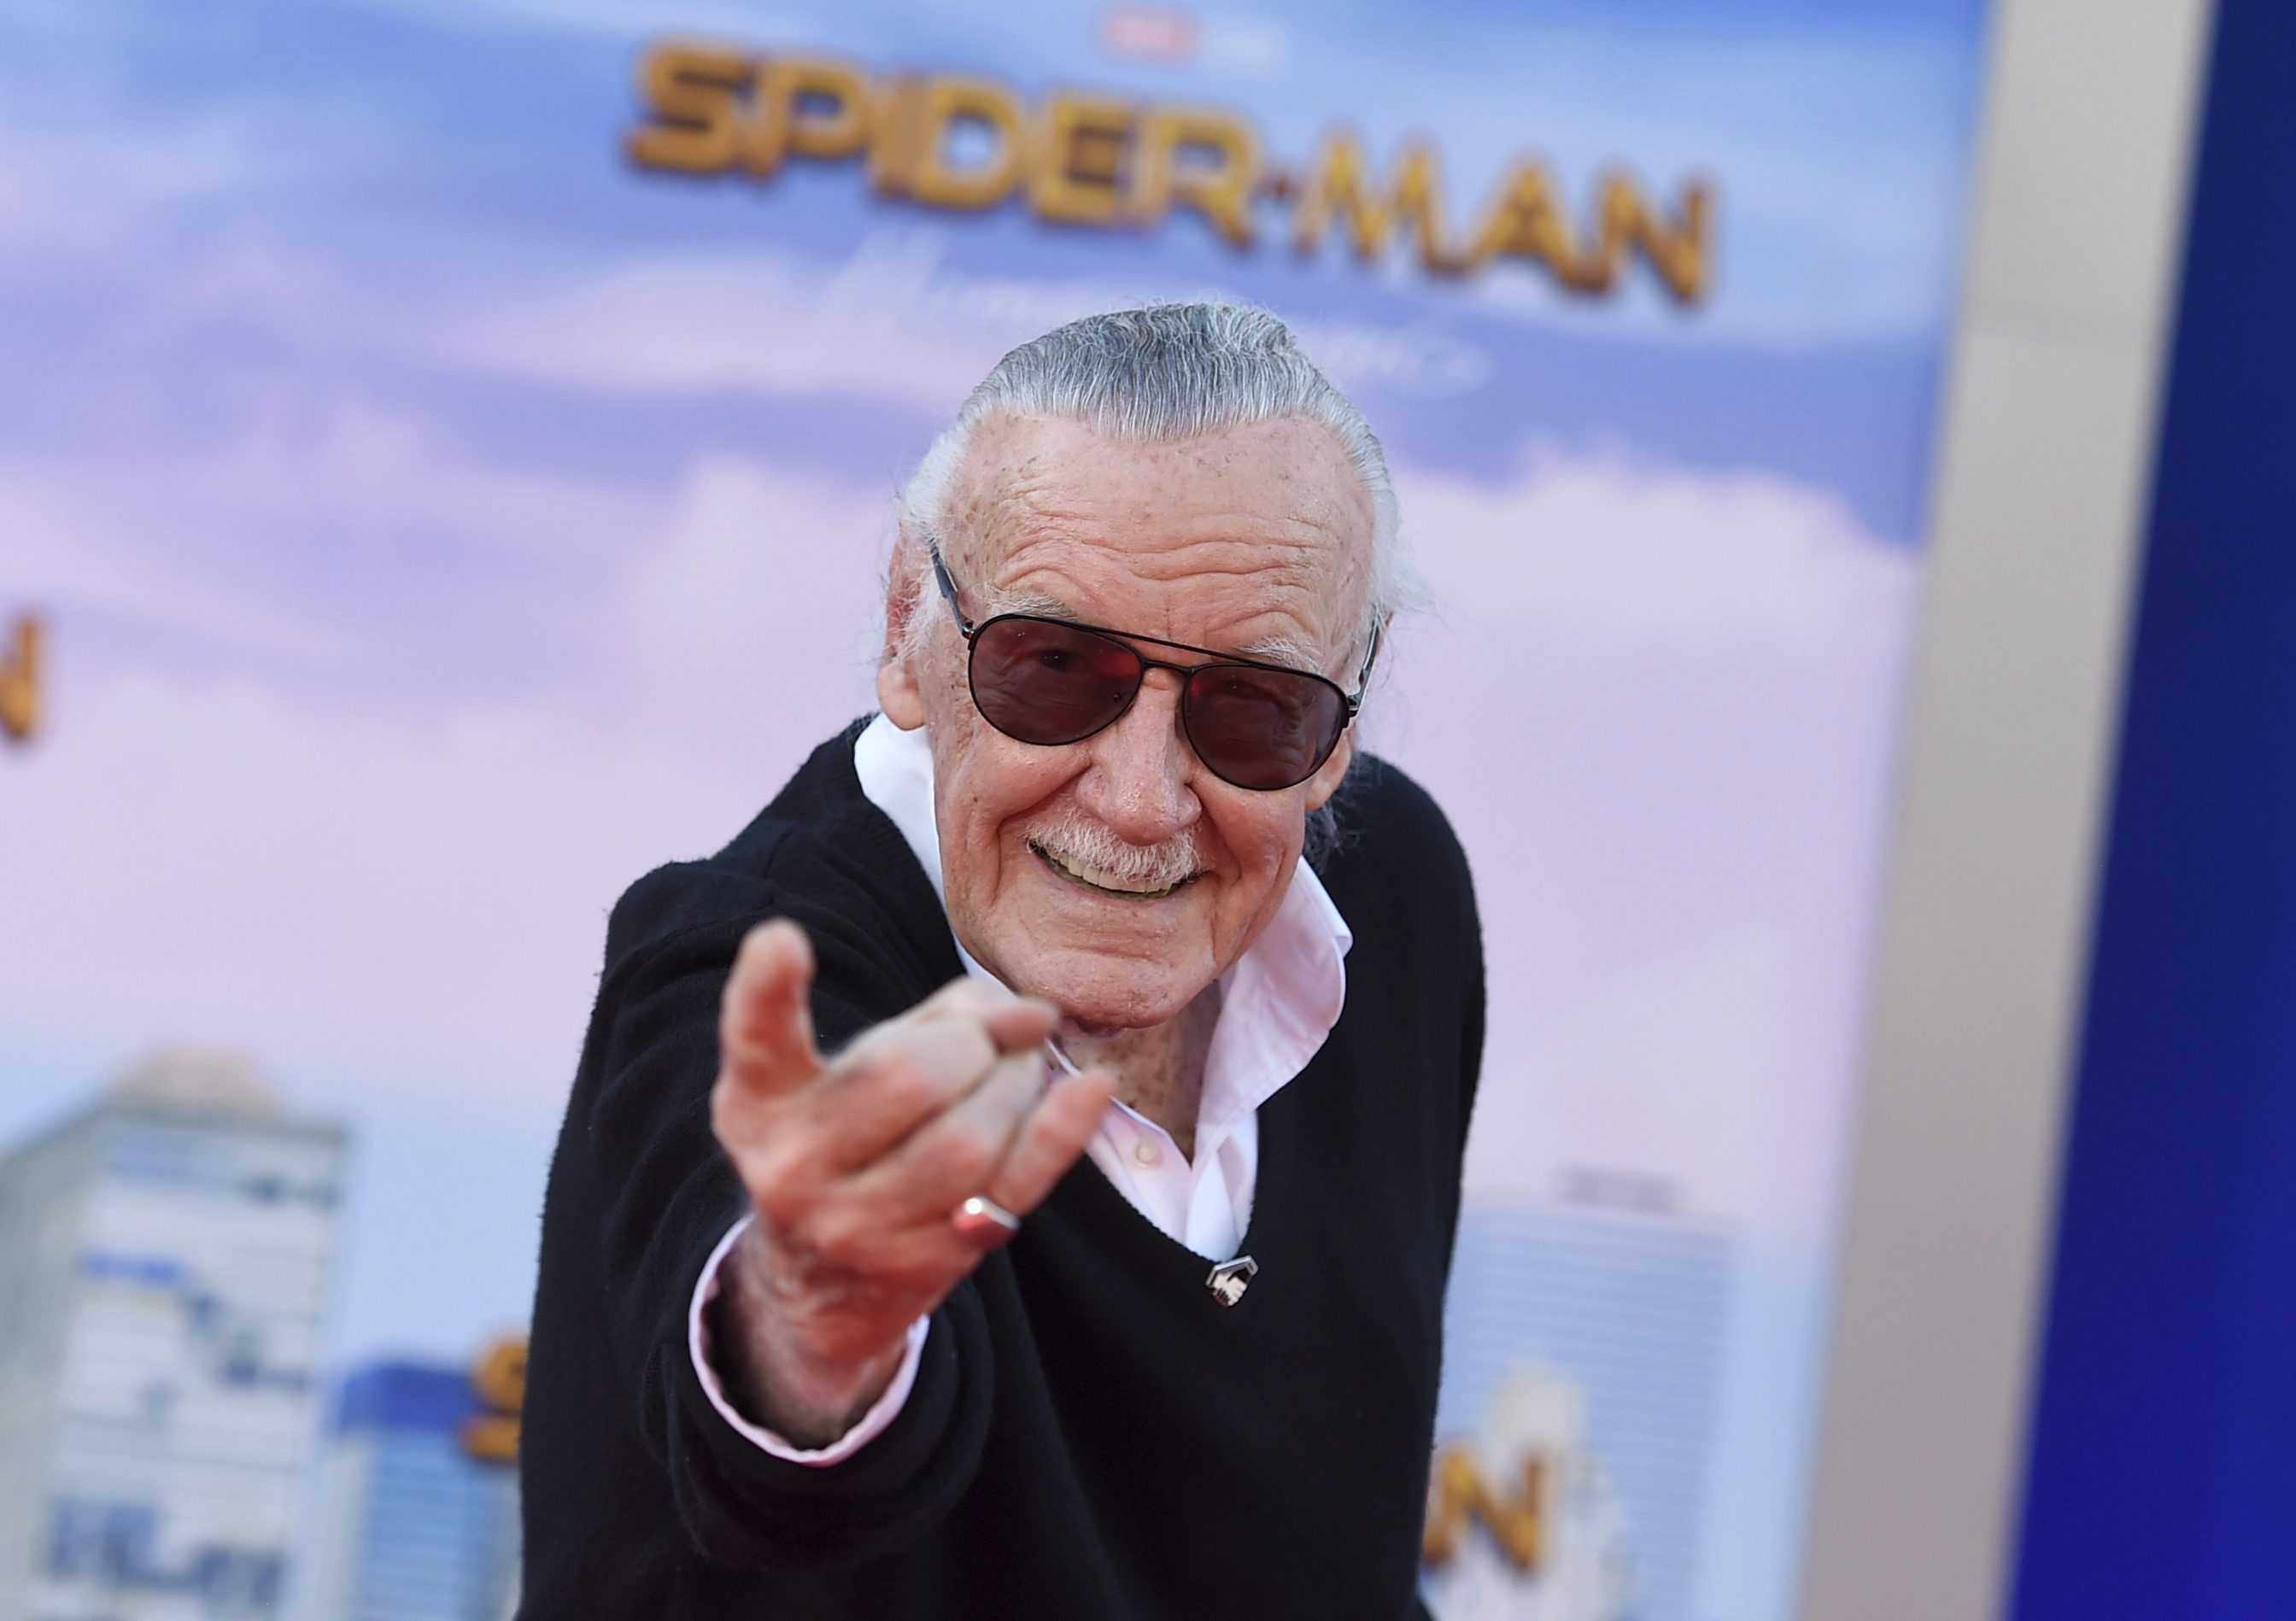 Legendary Marvel Comics creator Stan Lee has died